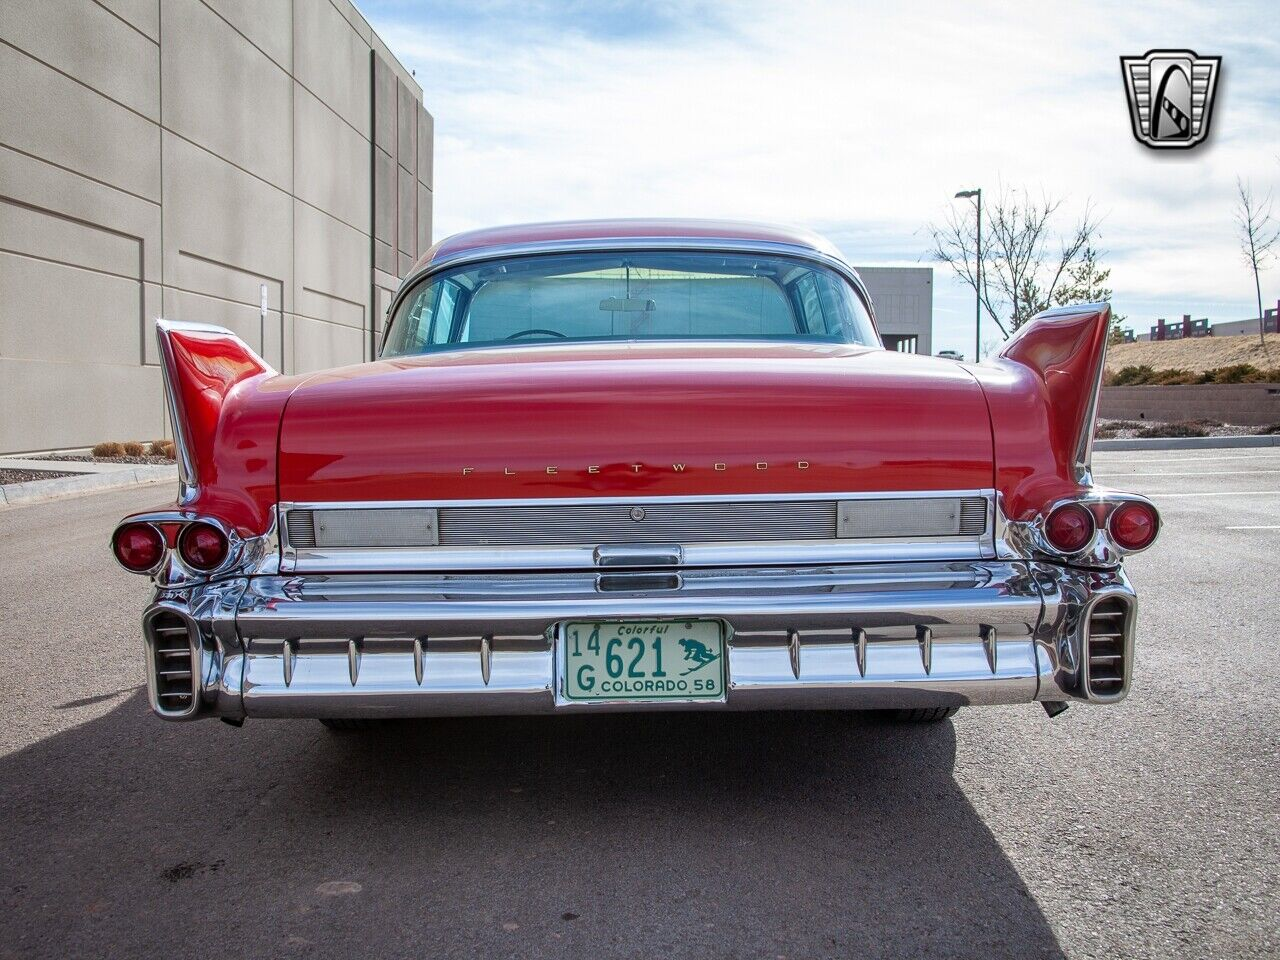 Dakota  1958 Cadillac Fleetwood  365 4 speed Automatic Available Now!